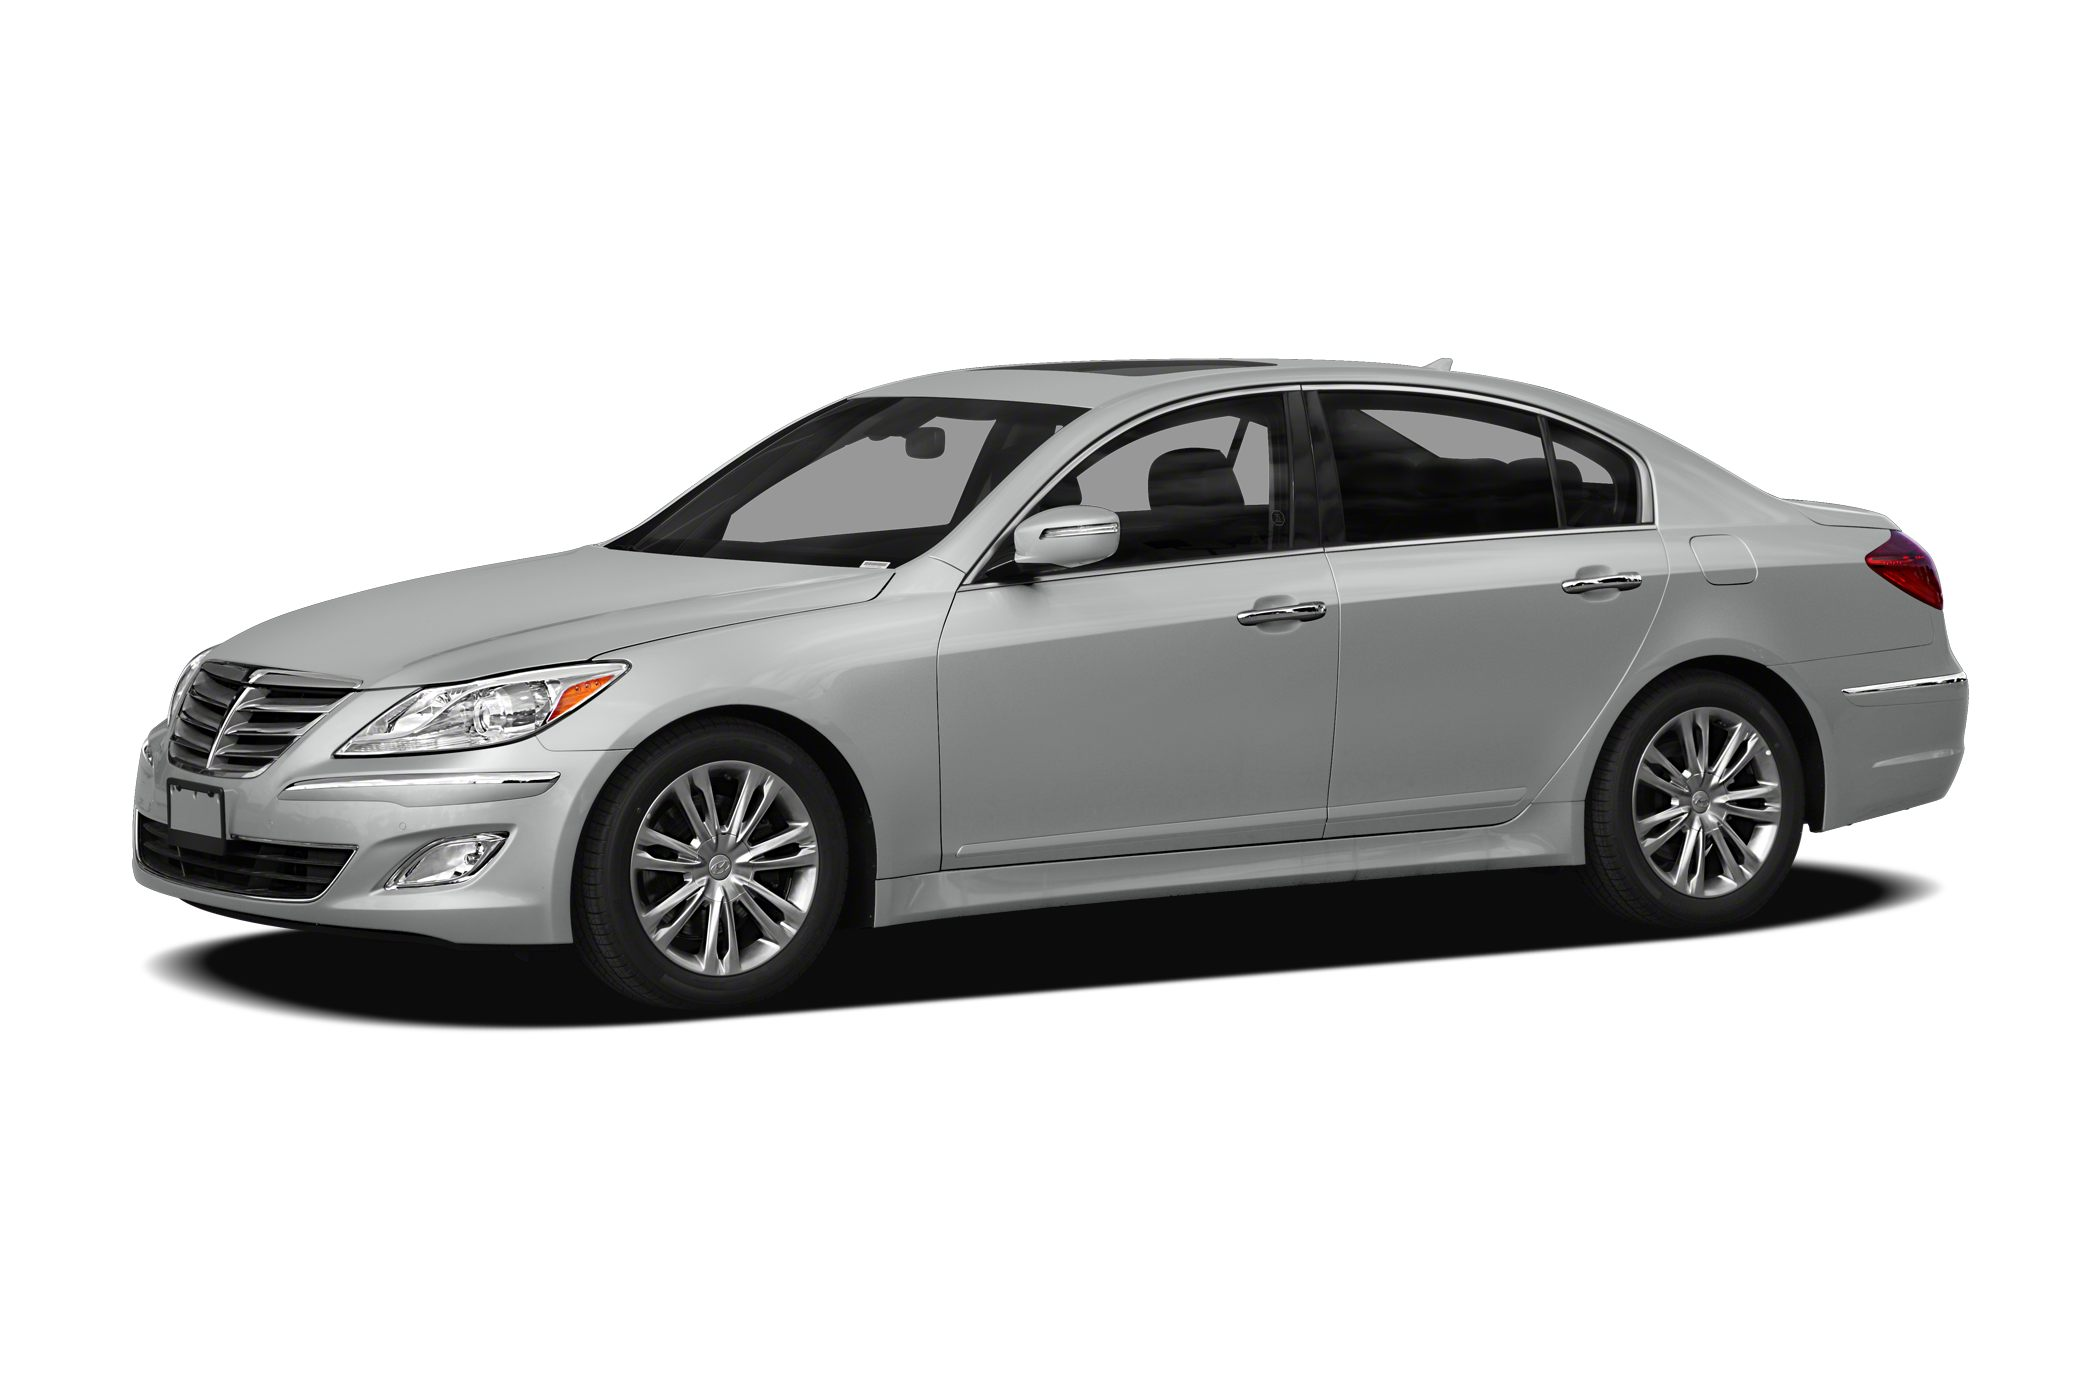 2012 Hyundai Genesis 3.8 Sedan for sale in Beaufort for $18,987 with 67,956 miles.